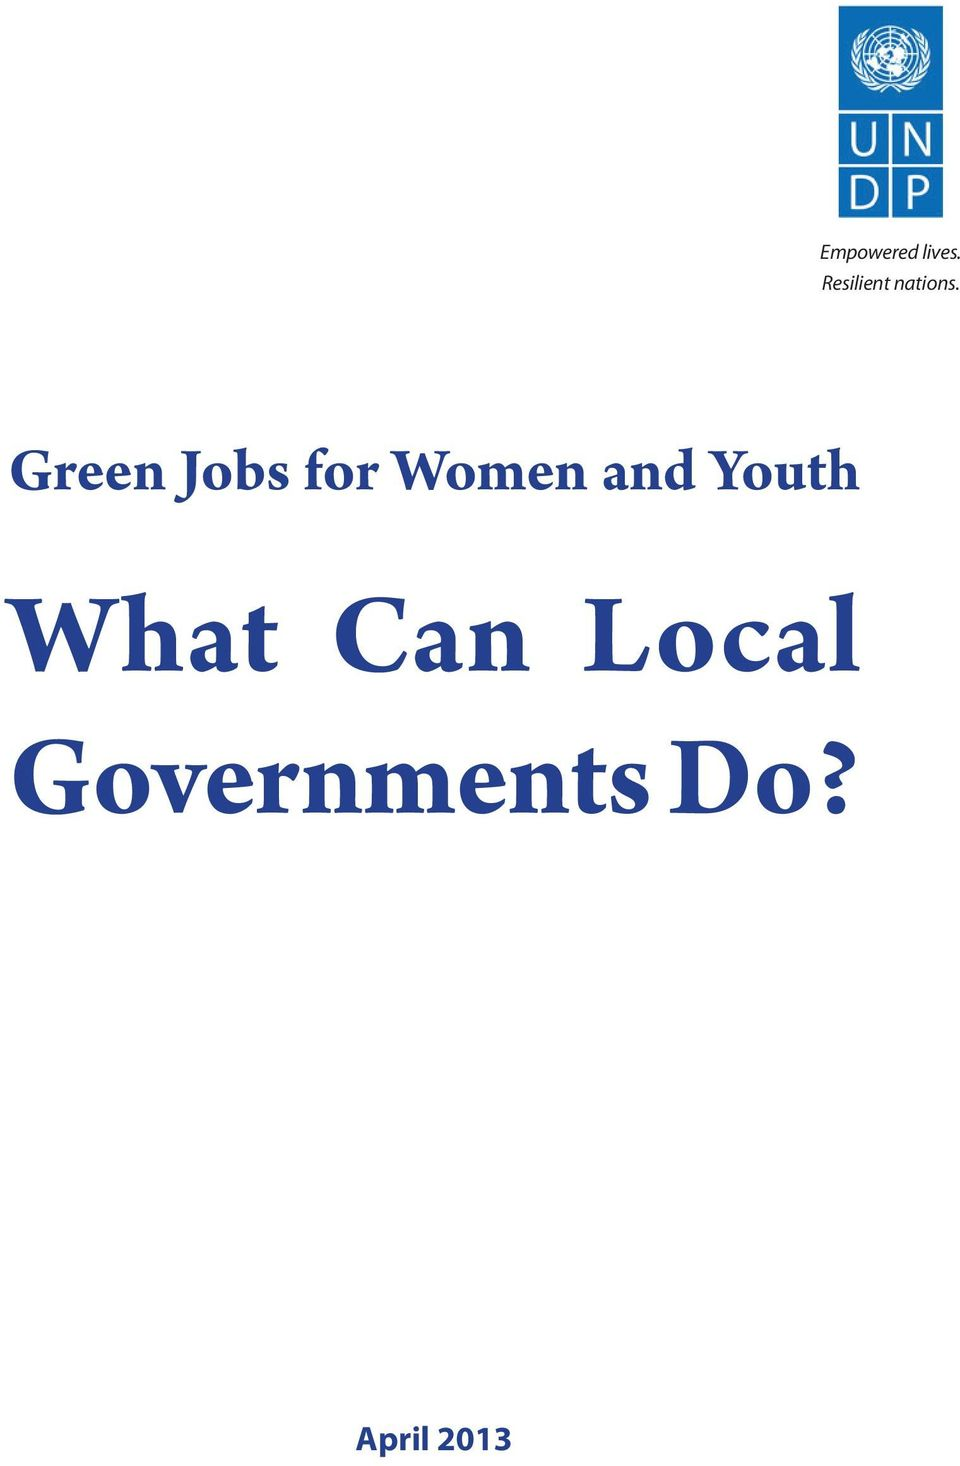 Green Jobs for Women and